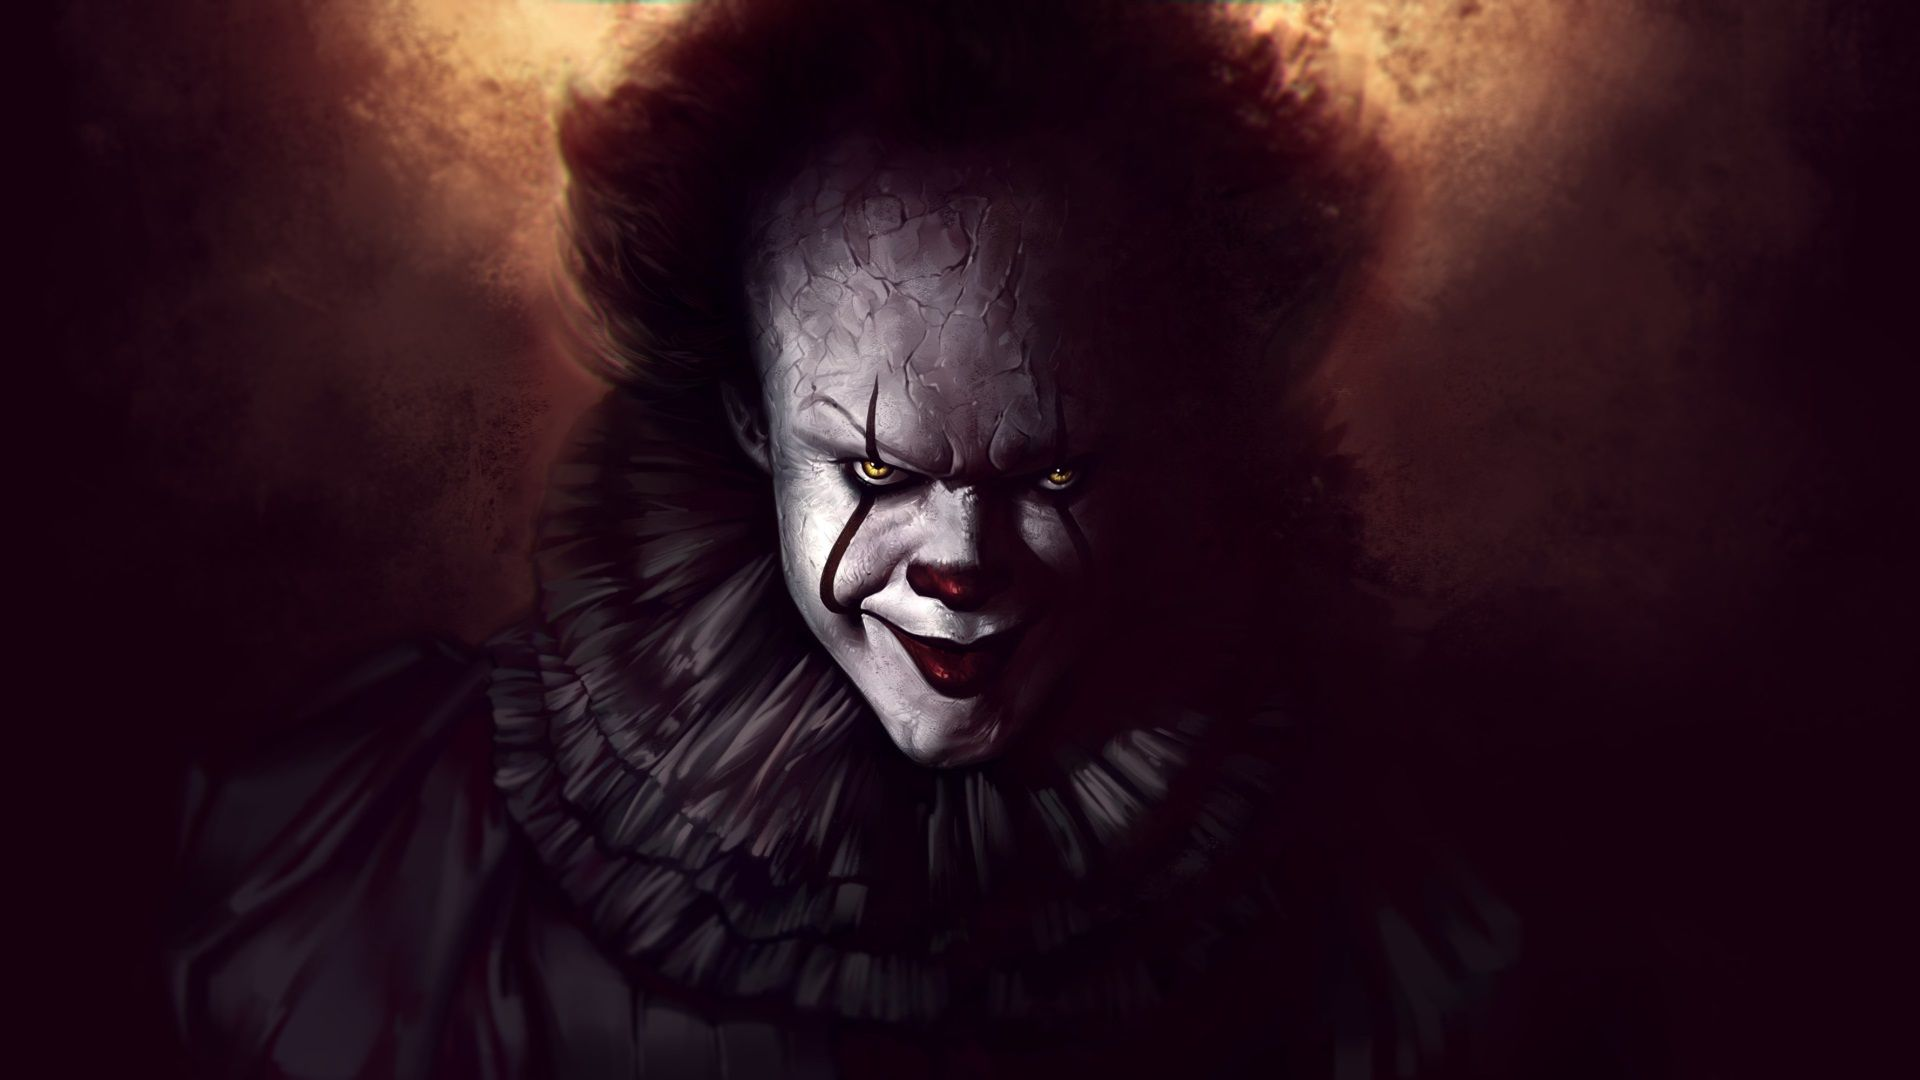 1920x1080 Pennywise Hd Image Pennywise The Dancing Clown Pennywise Scary Wallpaper